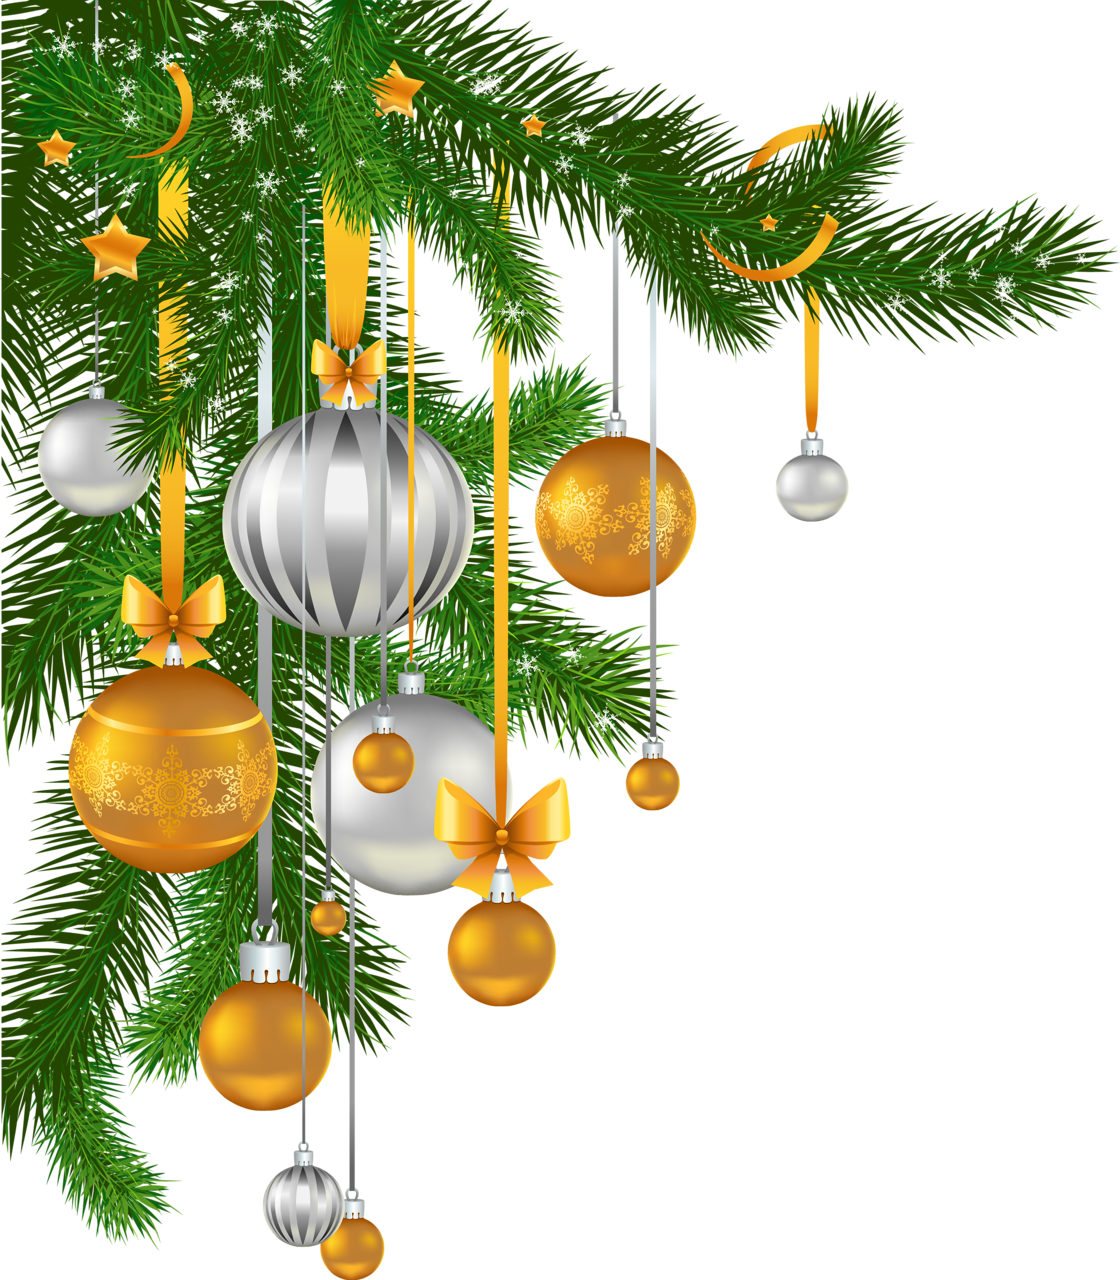 Christmas Backgrounds Png.Tree Christmas Background Png Free Download